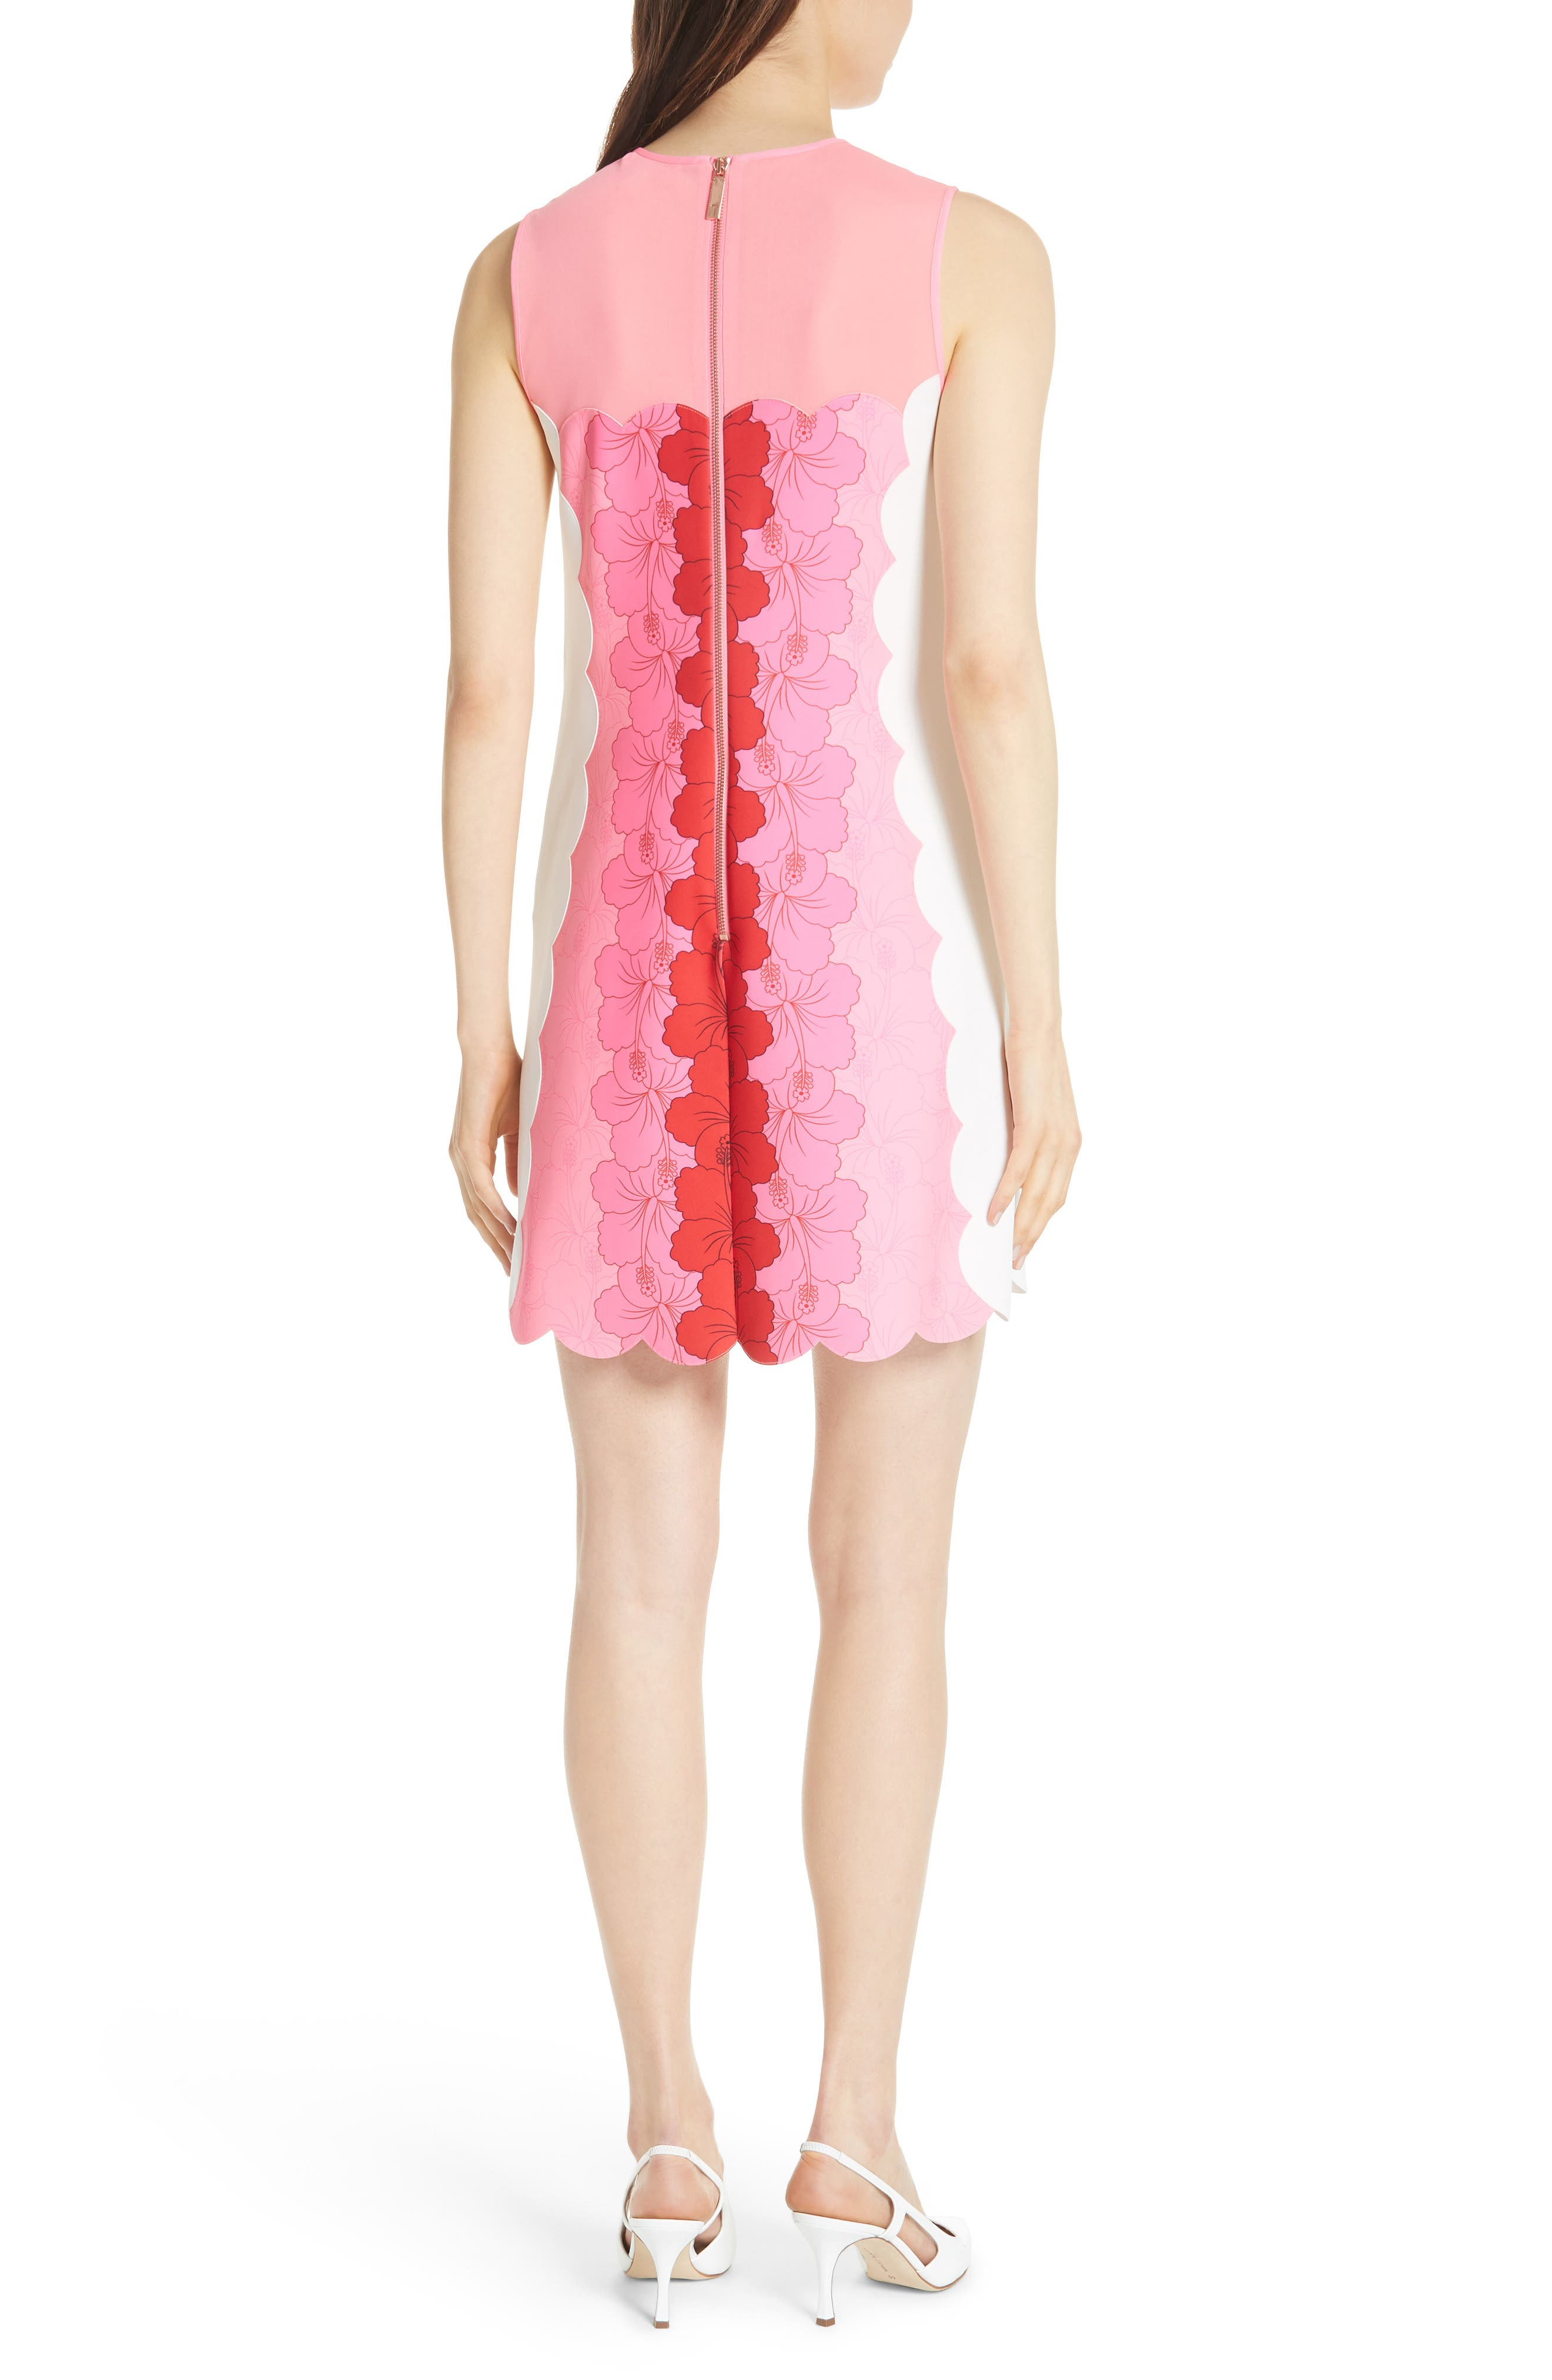 Angge Happiness Dress,                             Alternate thumbnail 2, color,                             Neon Pink